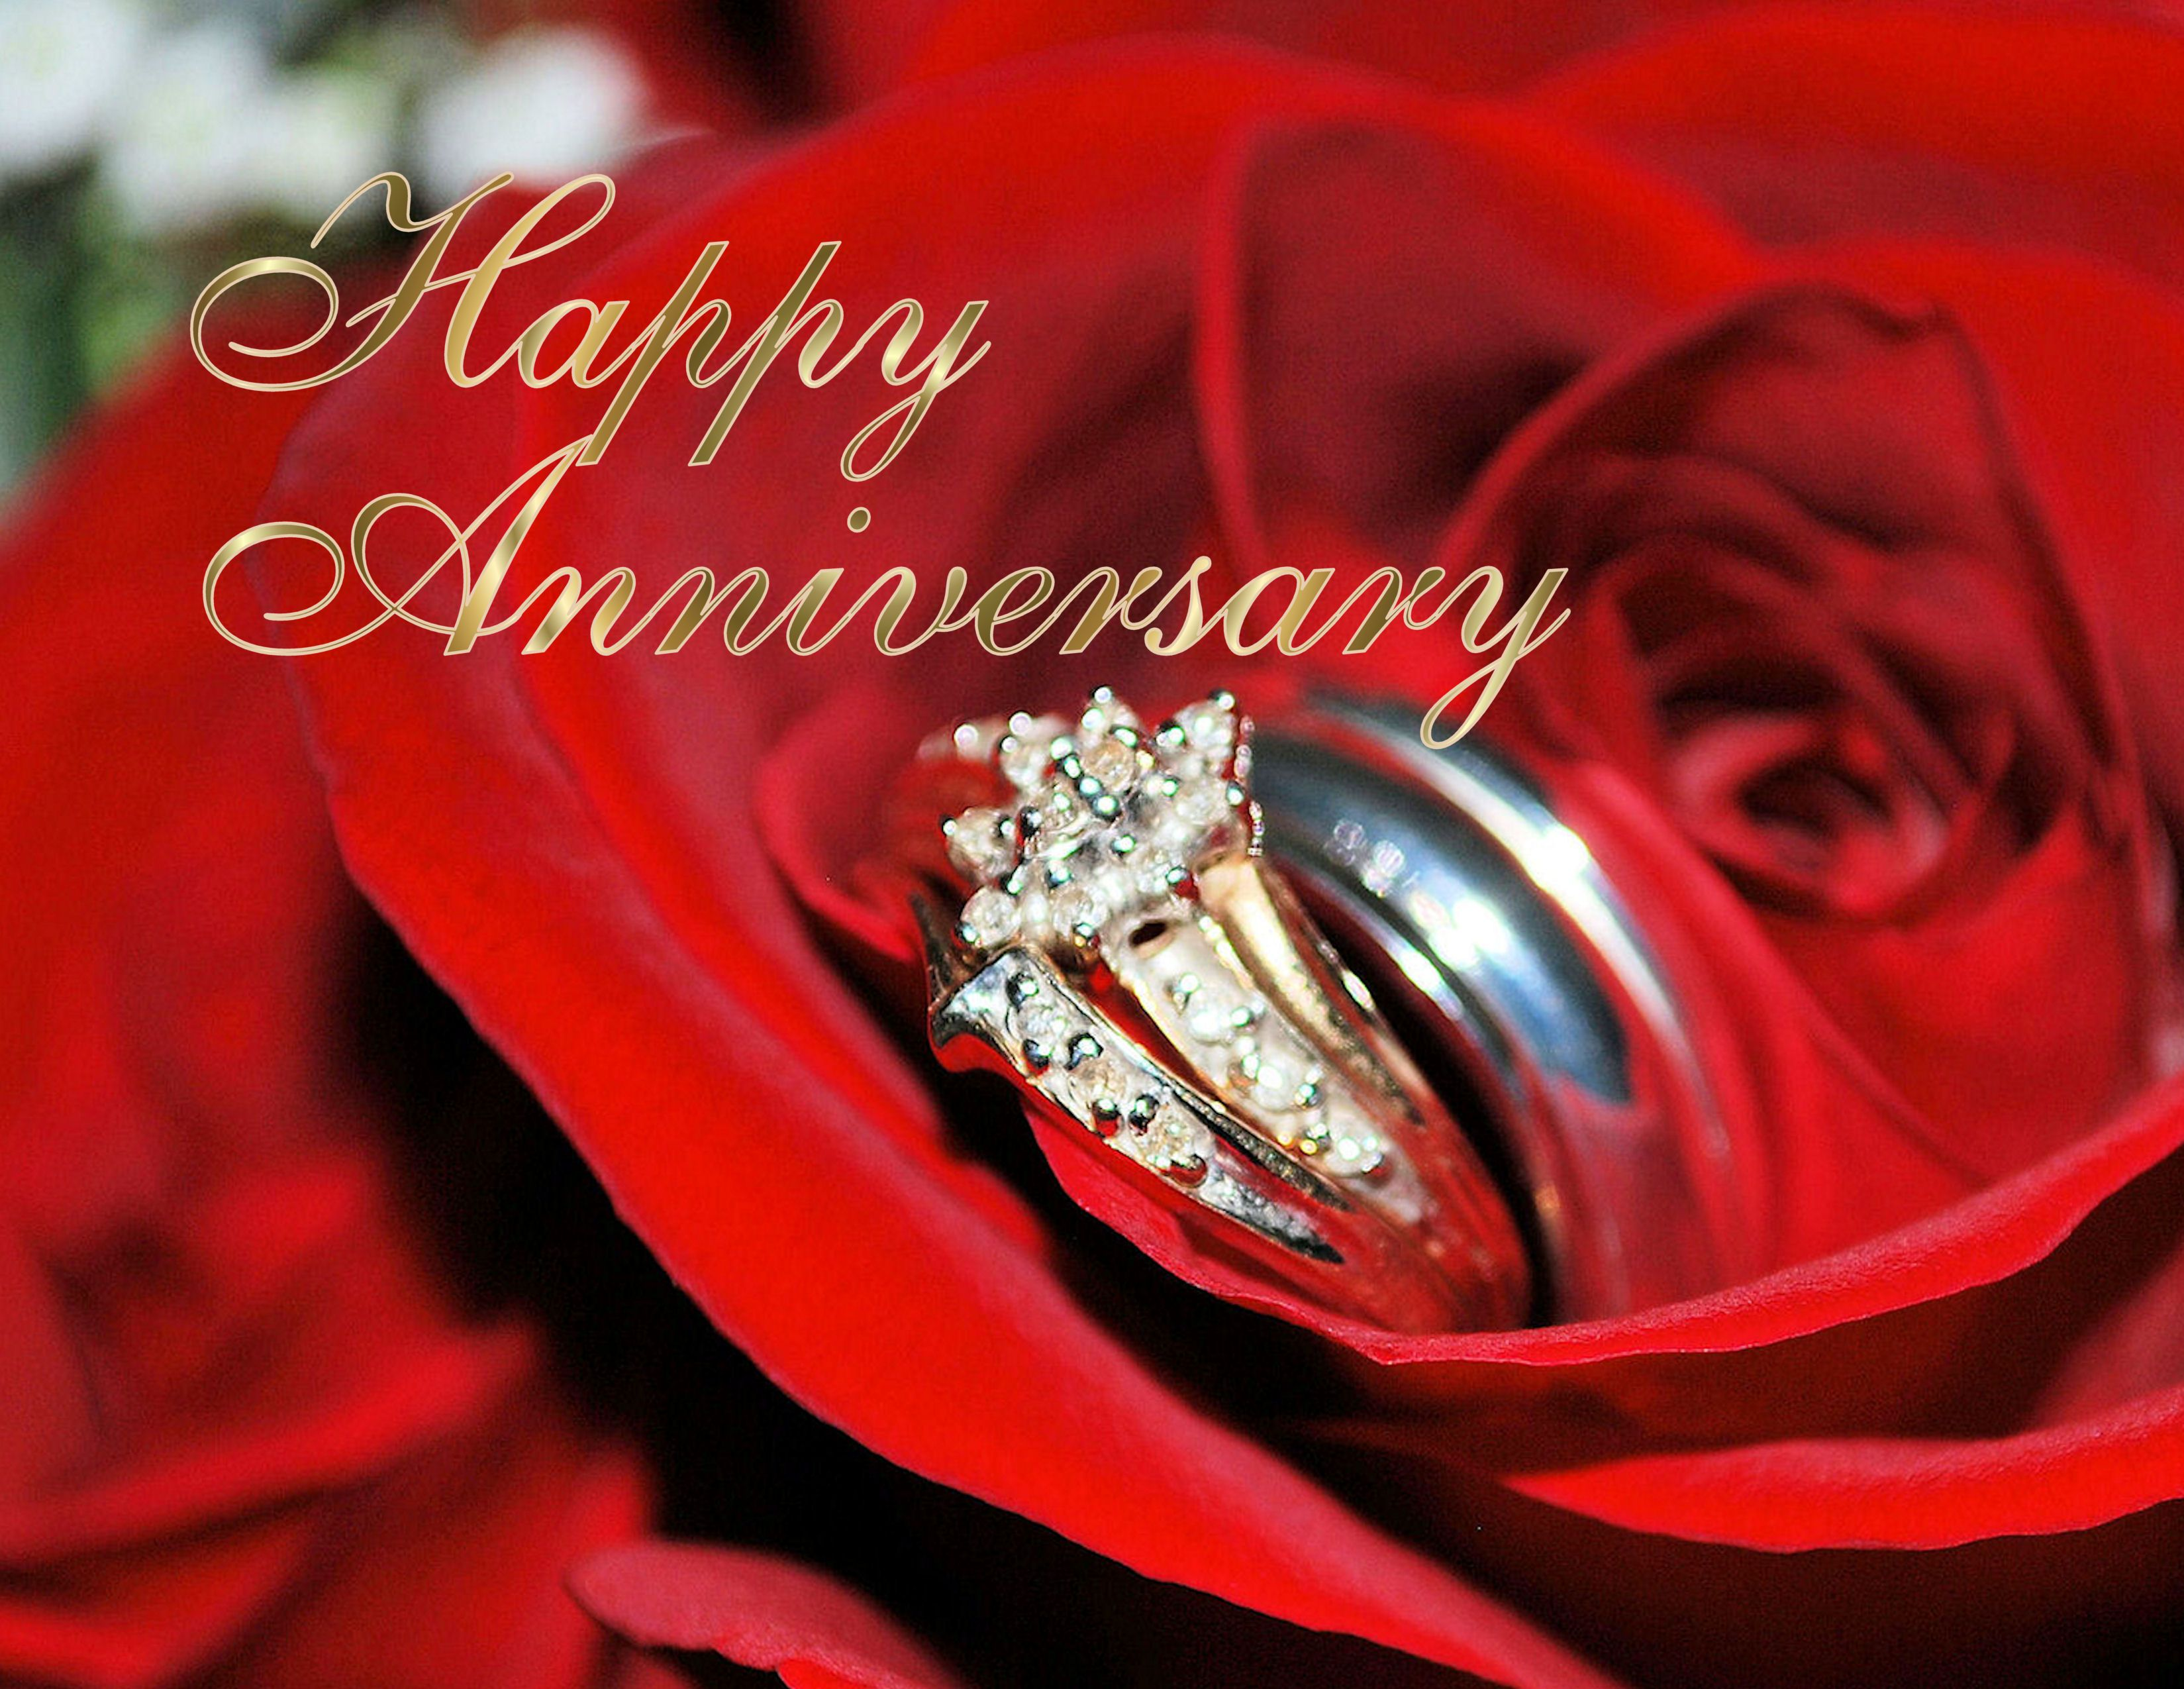 Wedding Anniversary Wallpaper 64 Wedding Anniversary Wishes Happy Anniversary My Love Happy Marriage Anniversary